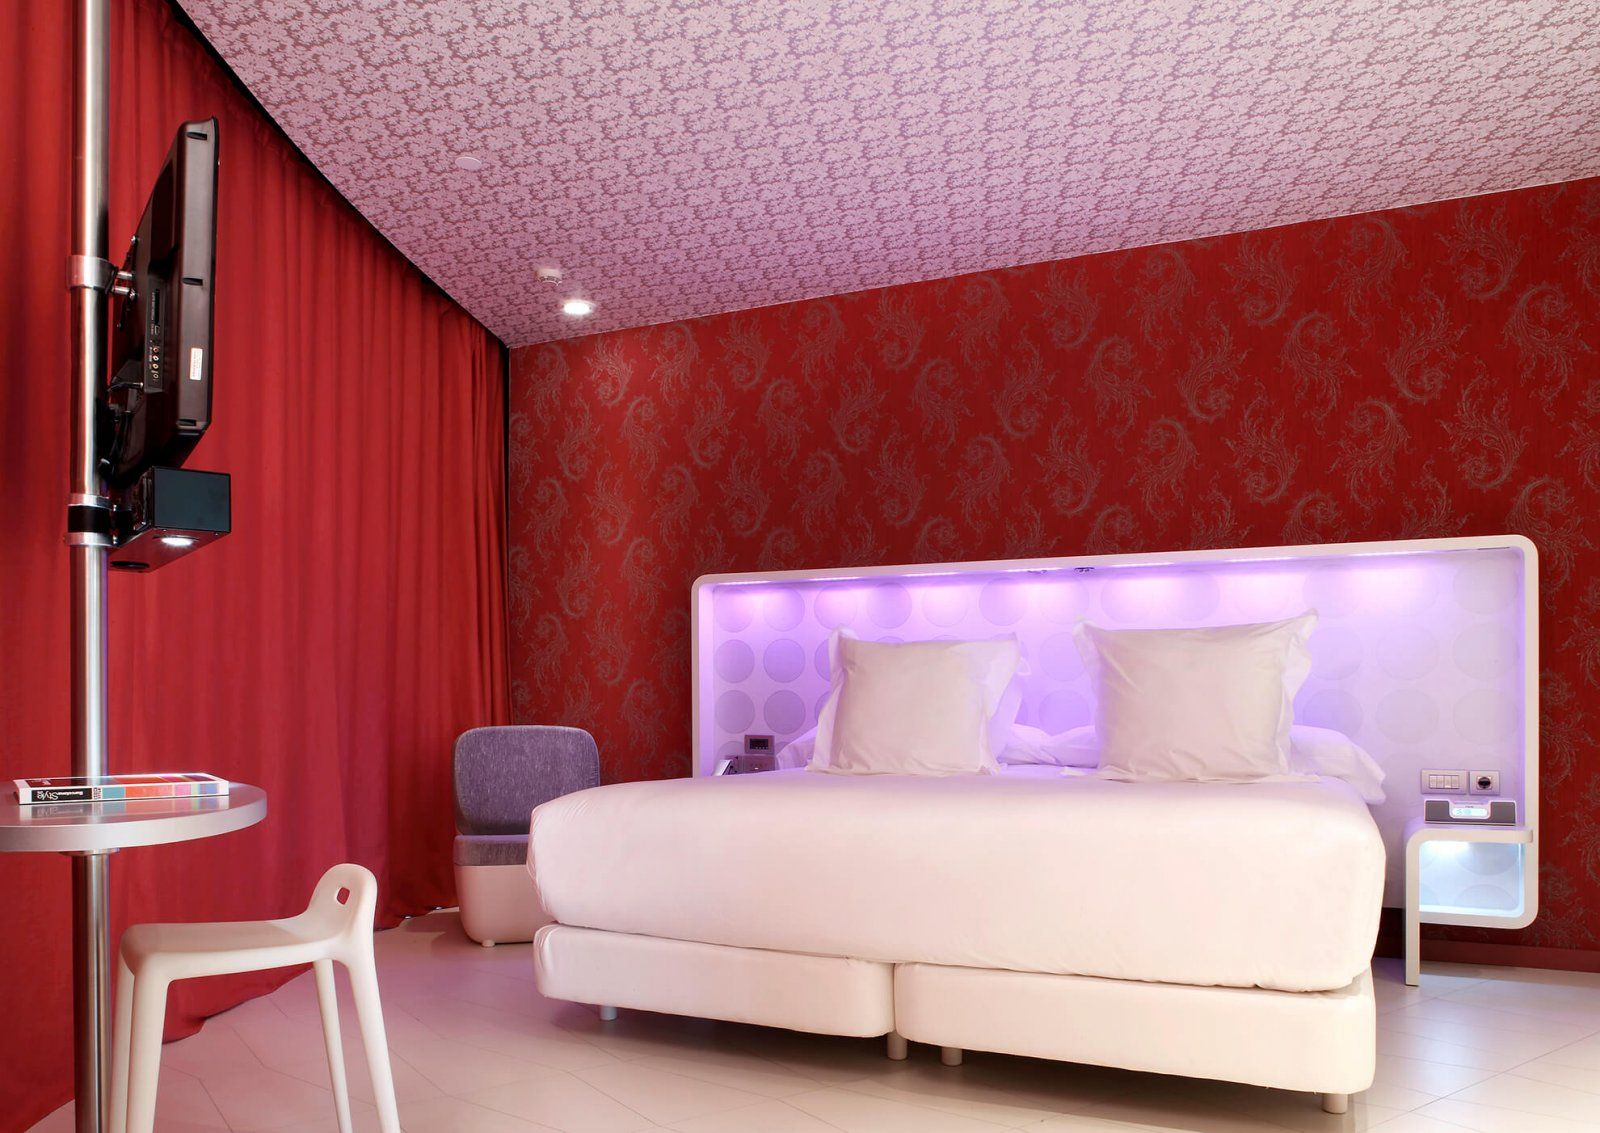 View of another room with double bed, red walls, lilac lights' headboard and patterned ceiling of the hotel raval